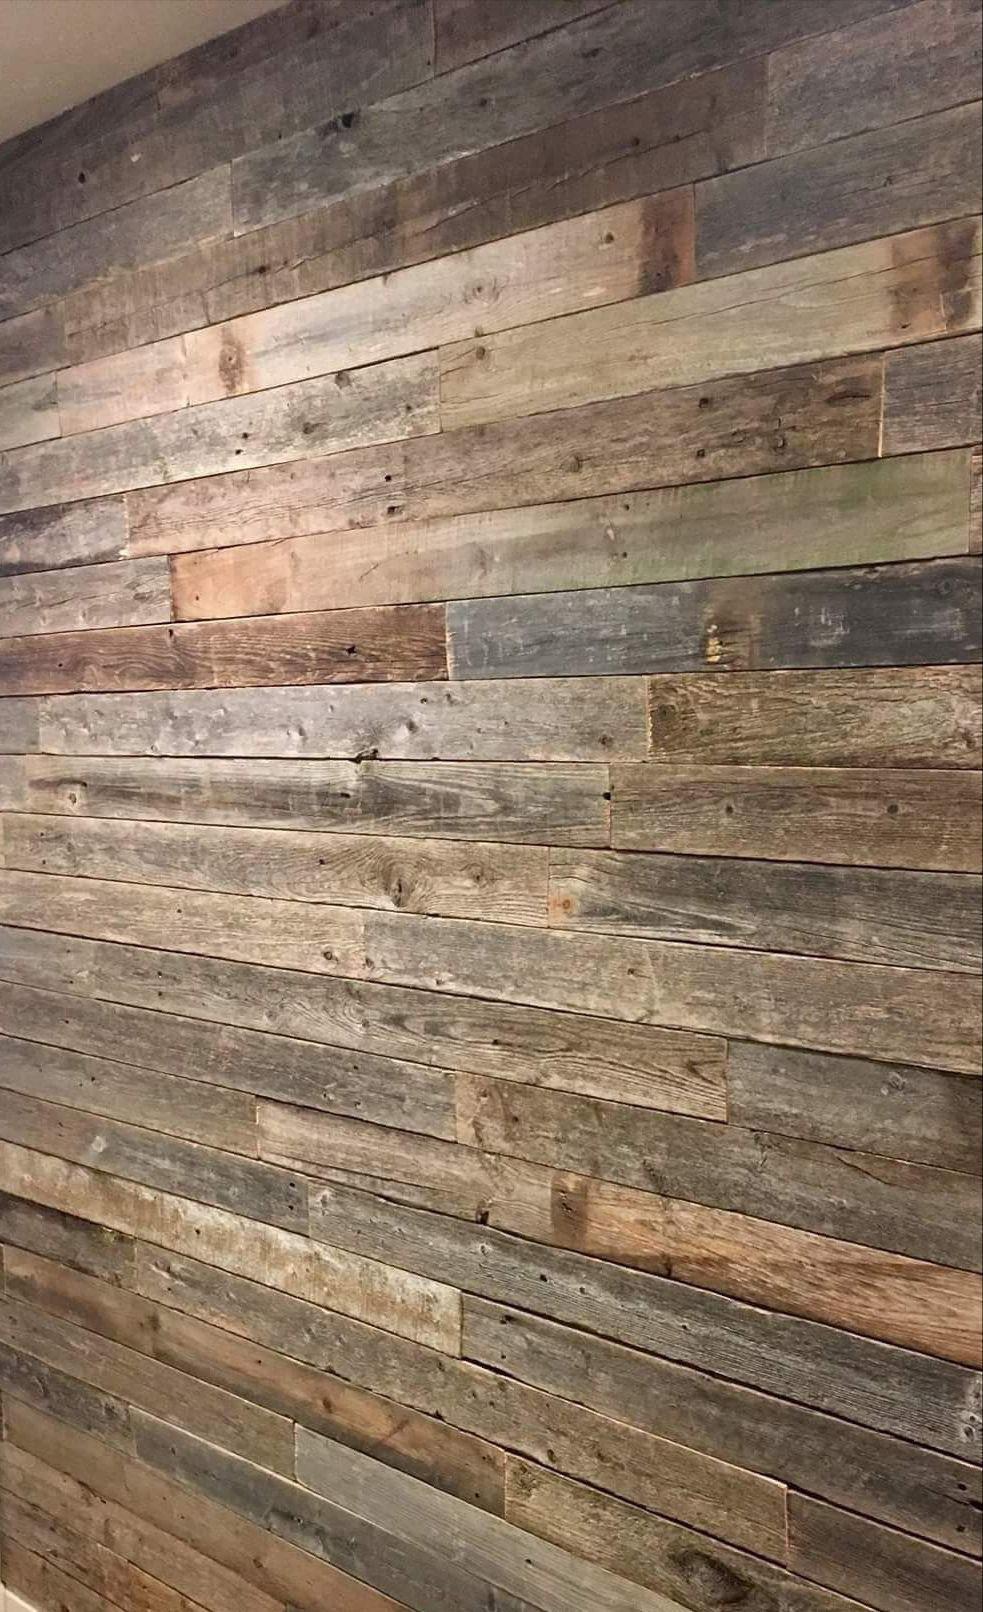 Rustic Weathered Reclaimed Wood Planks for DIY Crafts, Projects and Decor (20 Planks - 48'' Long) by Rockin' Wood